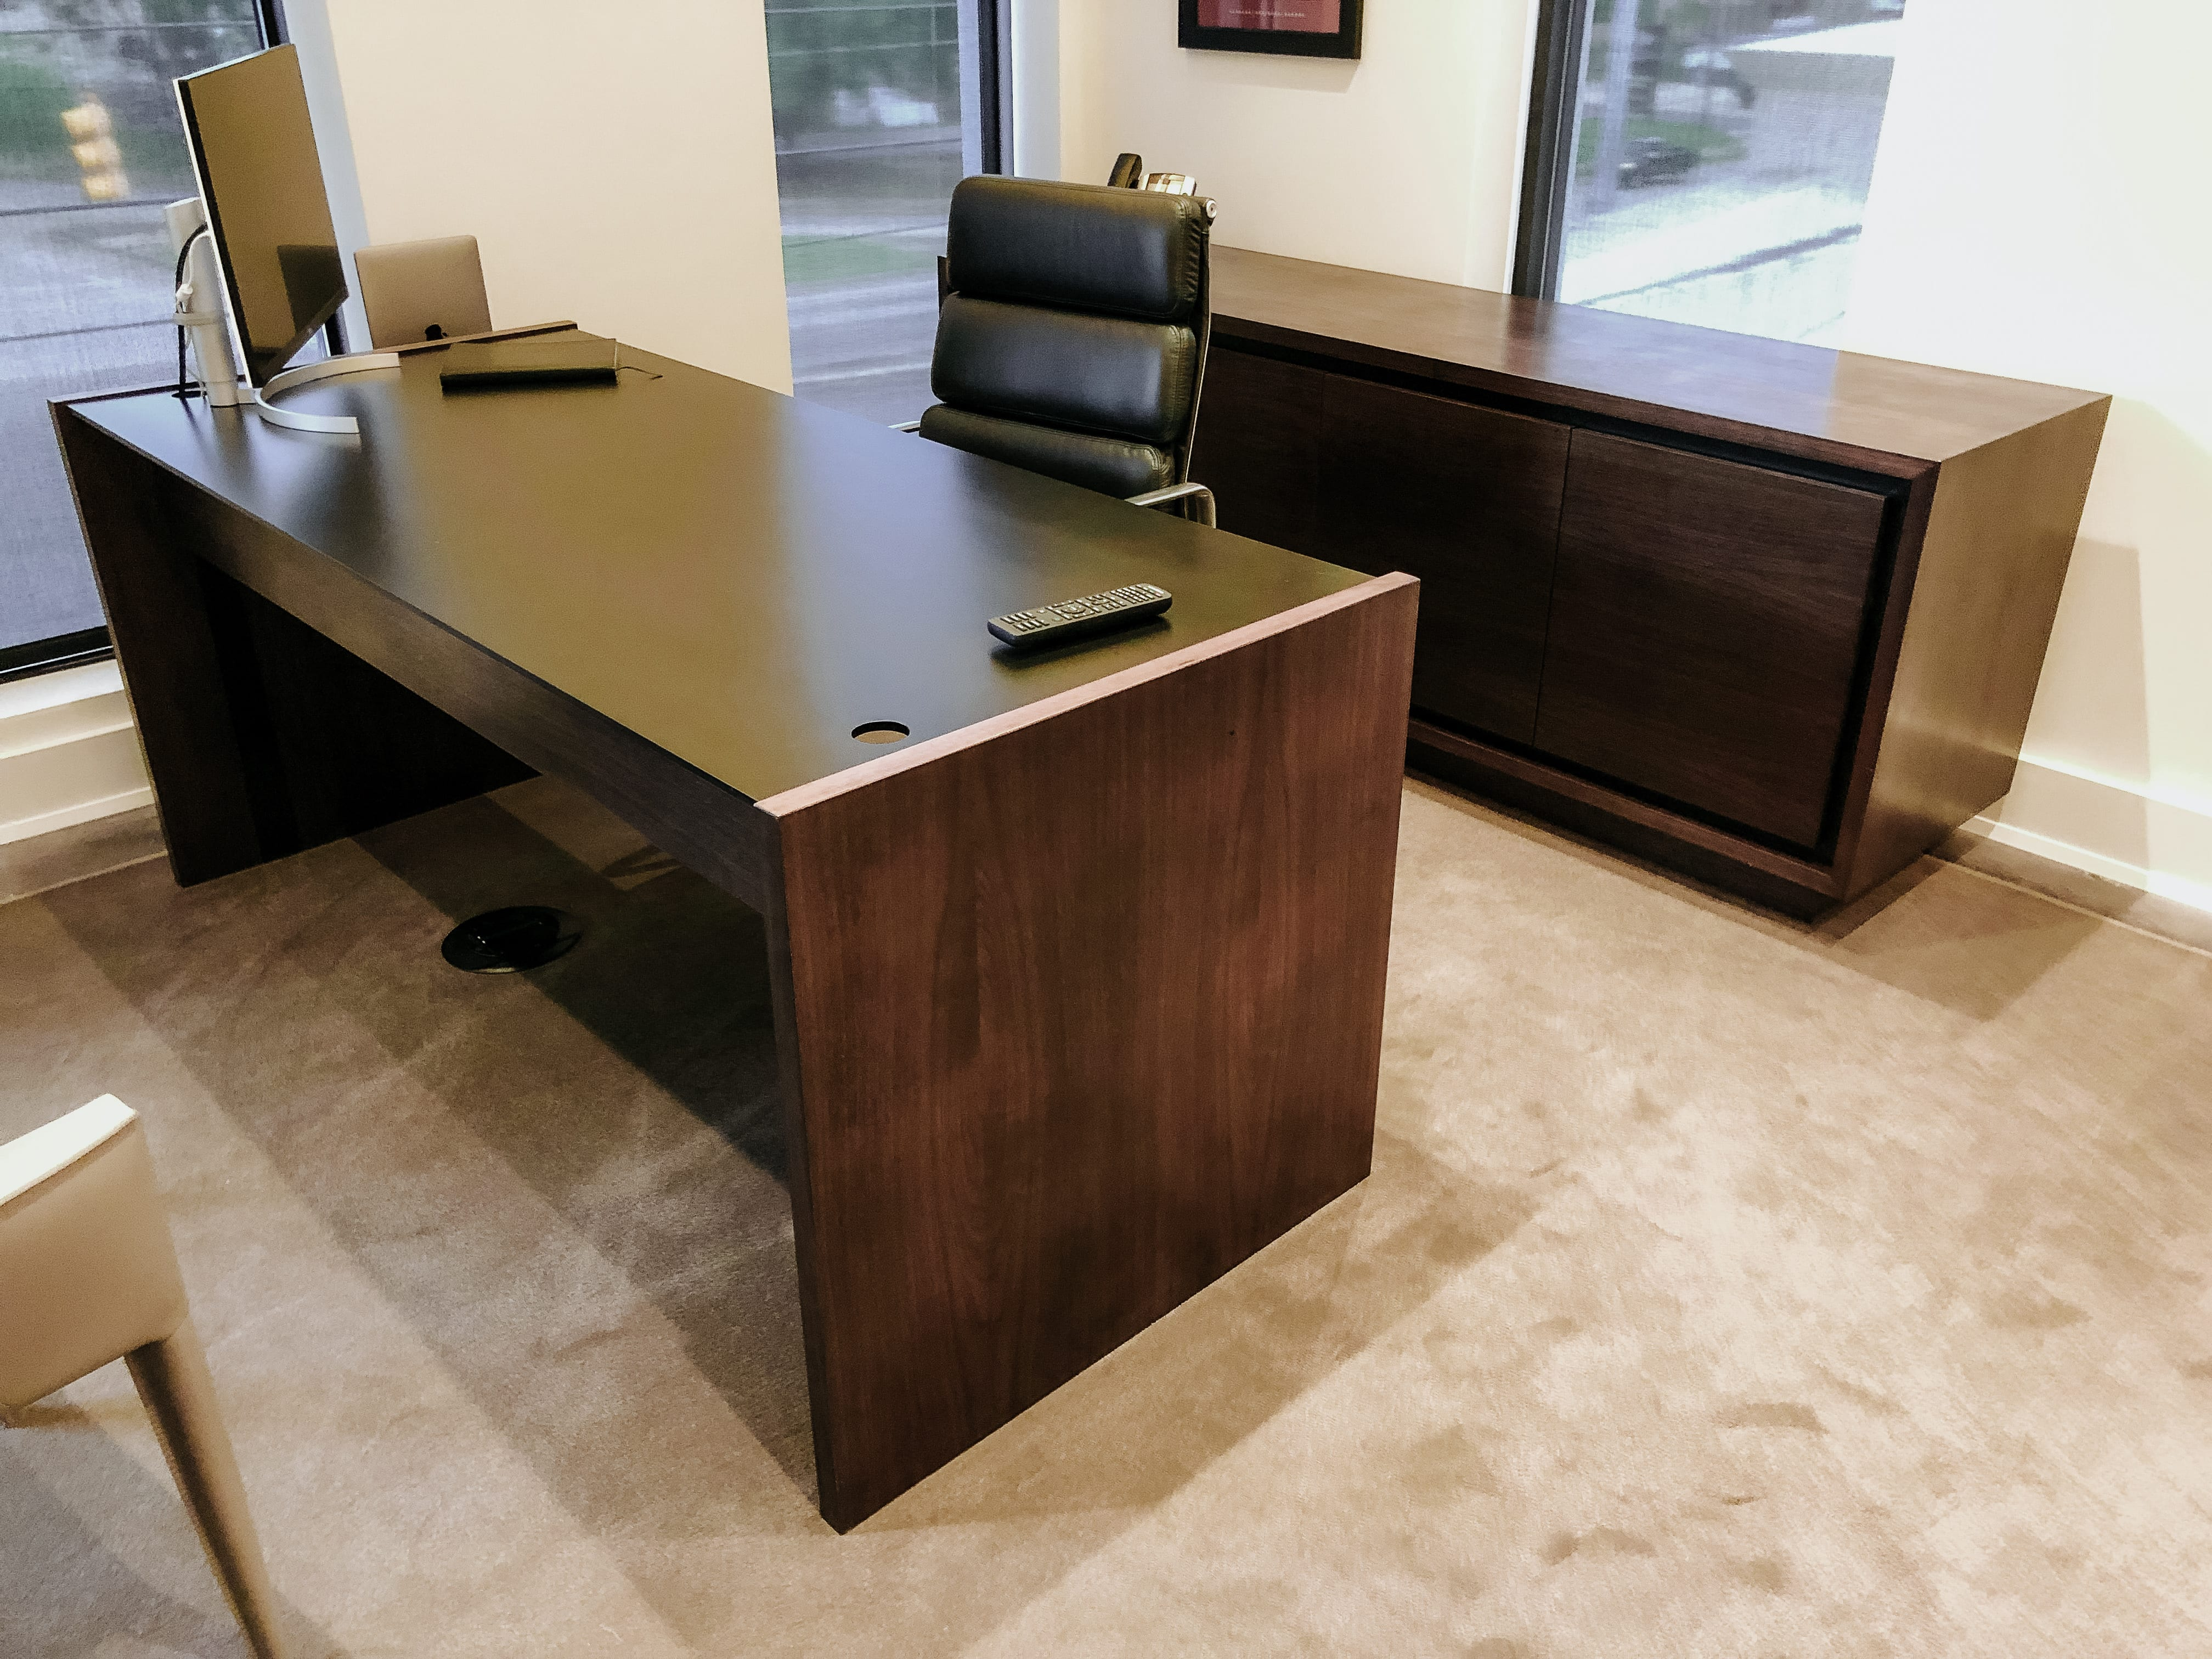 Sleek Walnut Office Desk and Matching Credenza